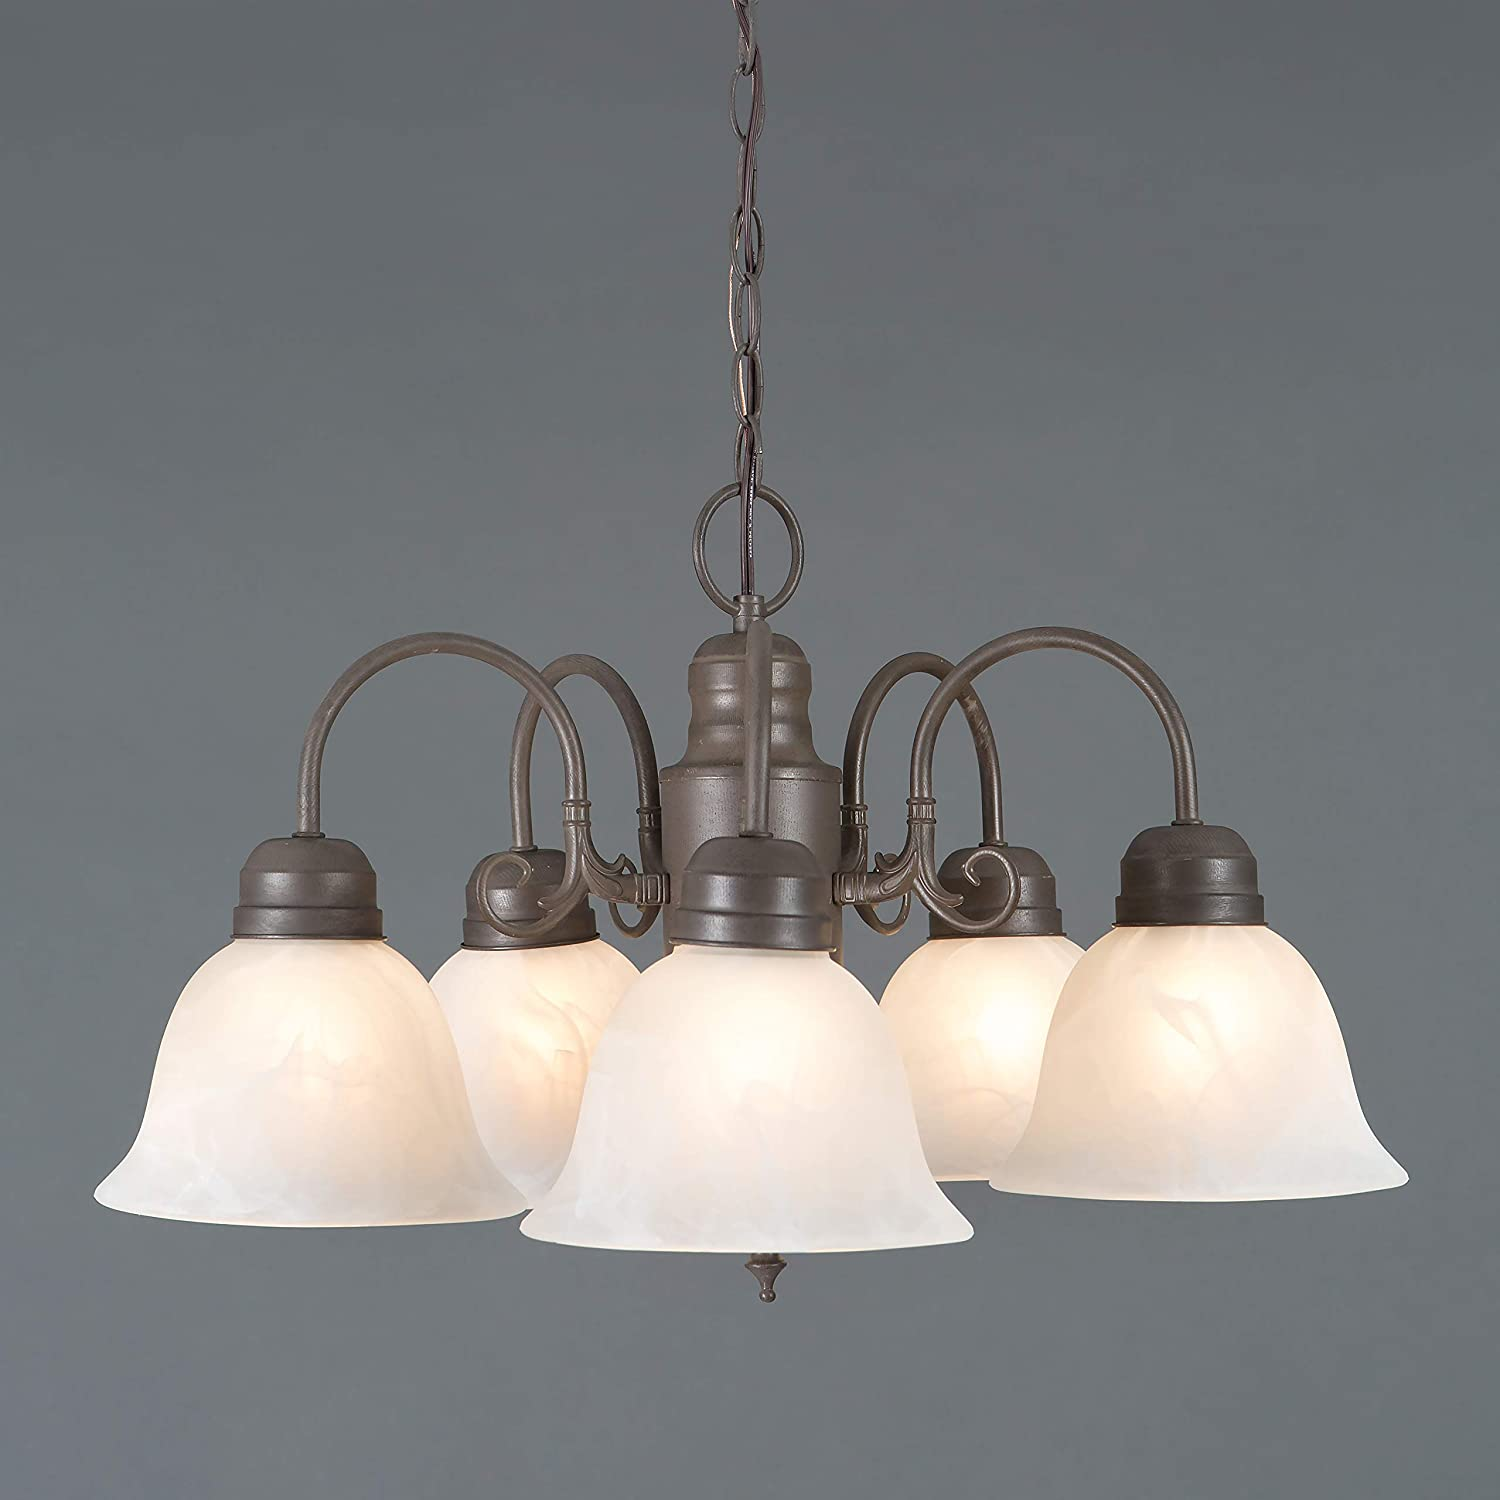 Yosemite Home Decor 1435-5DB Manzanita 5 Light Chandelier, Frosted White Marble Glass Shades, Dark Brown Finished Frame